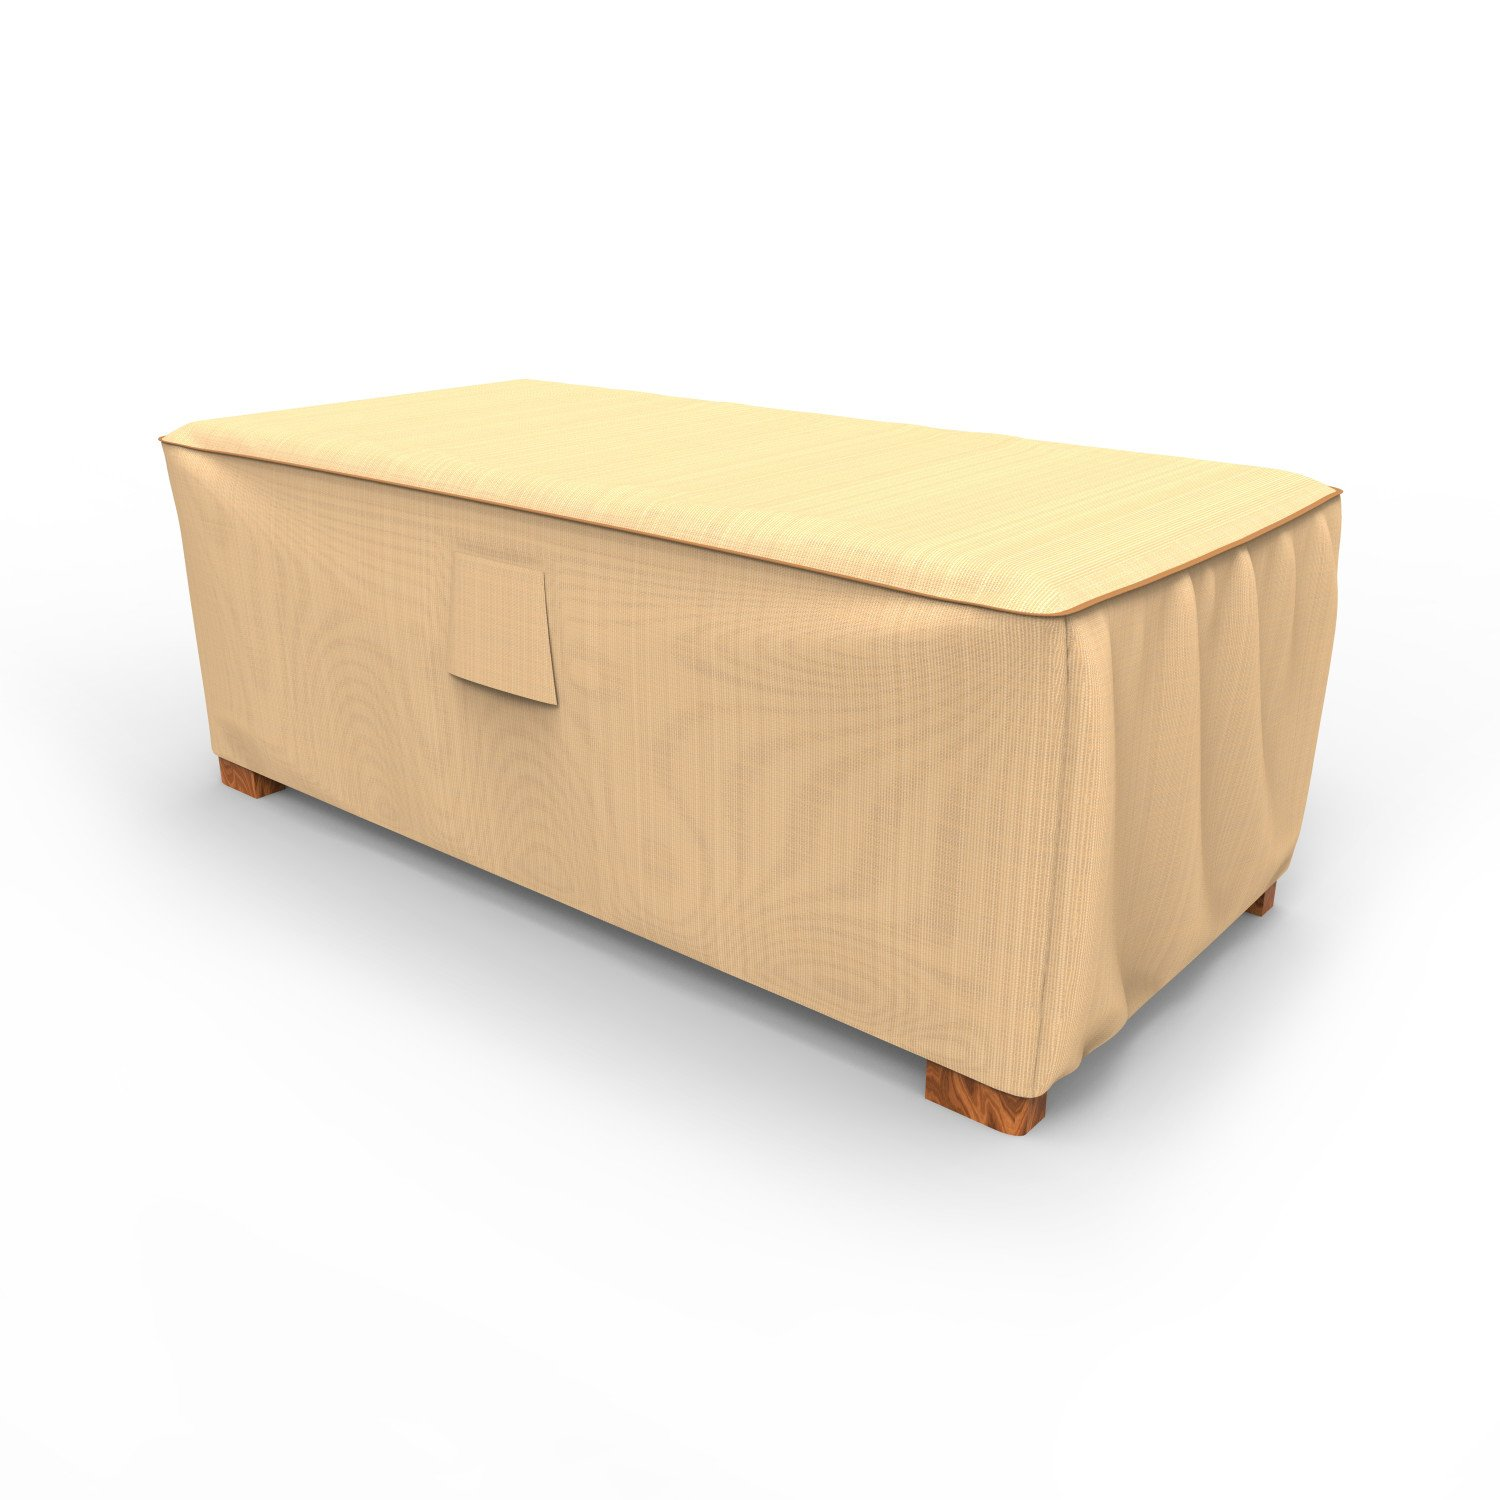 Budge P4A03TNNW1 Slim Patio Ottoman Cover Rust-Oleum Neverwet Furniture, 25'' x 18'' W x 42'' L, Tan